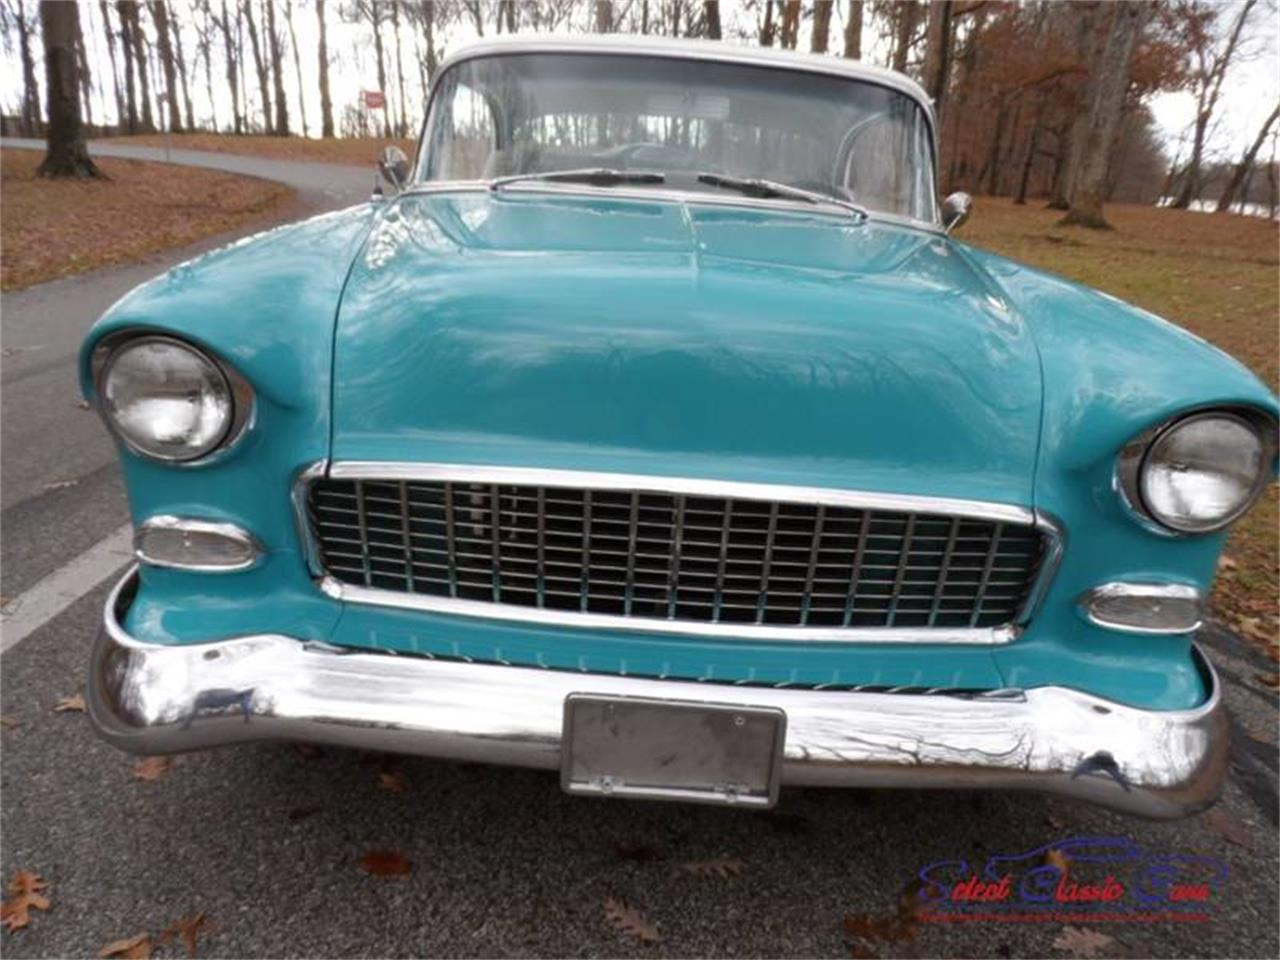 Large Picture of 1955 Chevrolet Bel Air located in Georgia - $49,900.00 Offered by Select Classic Cars - P1VV